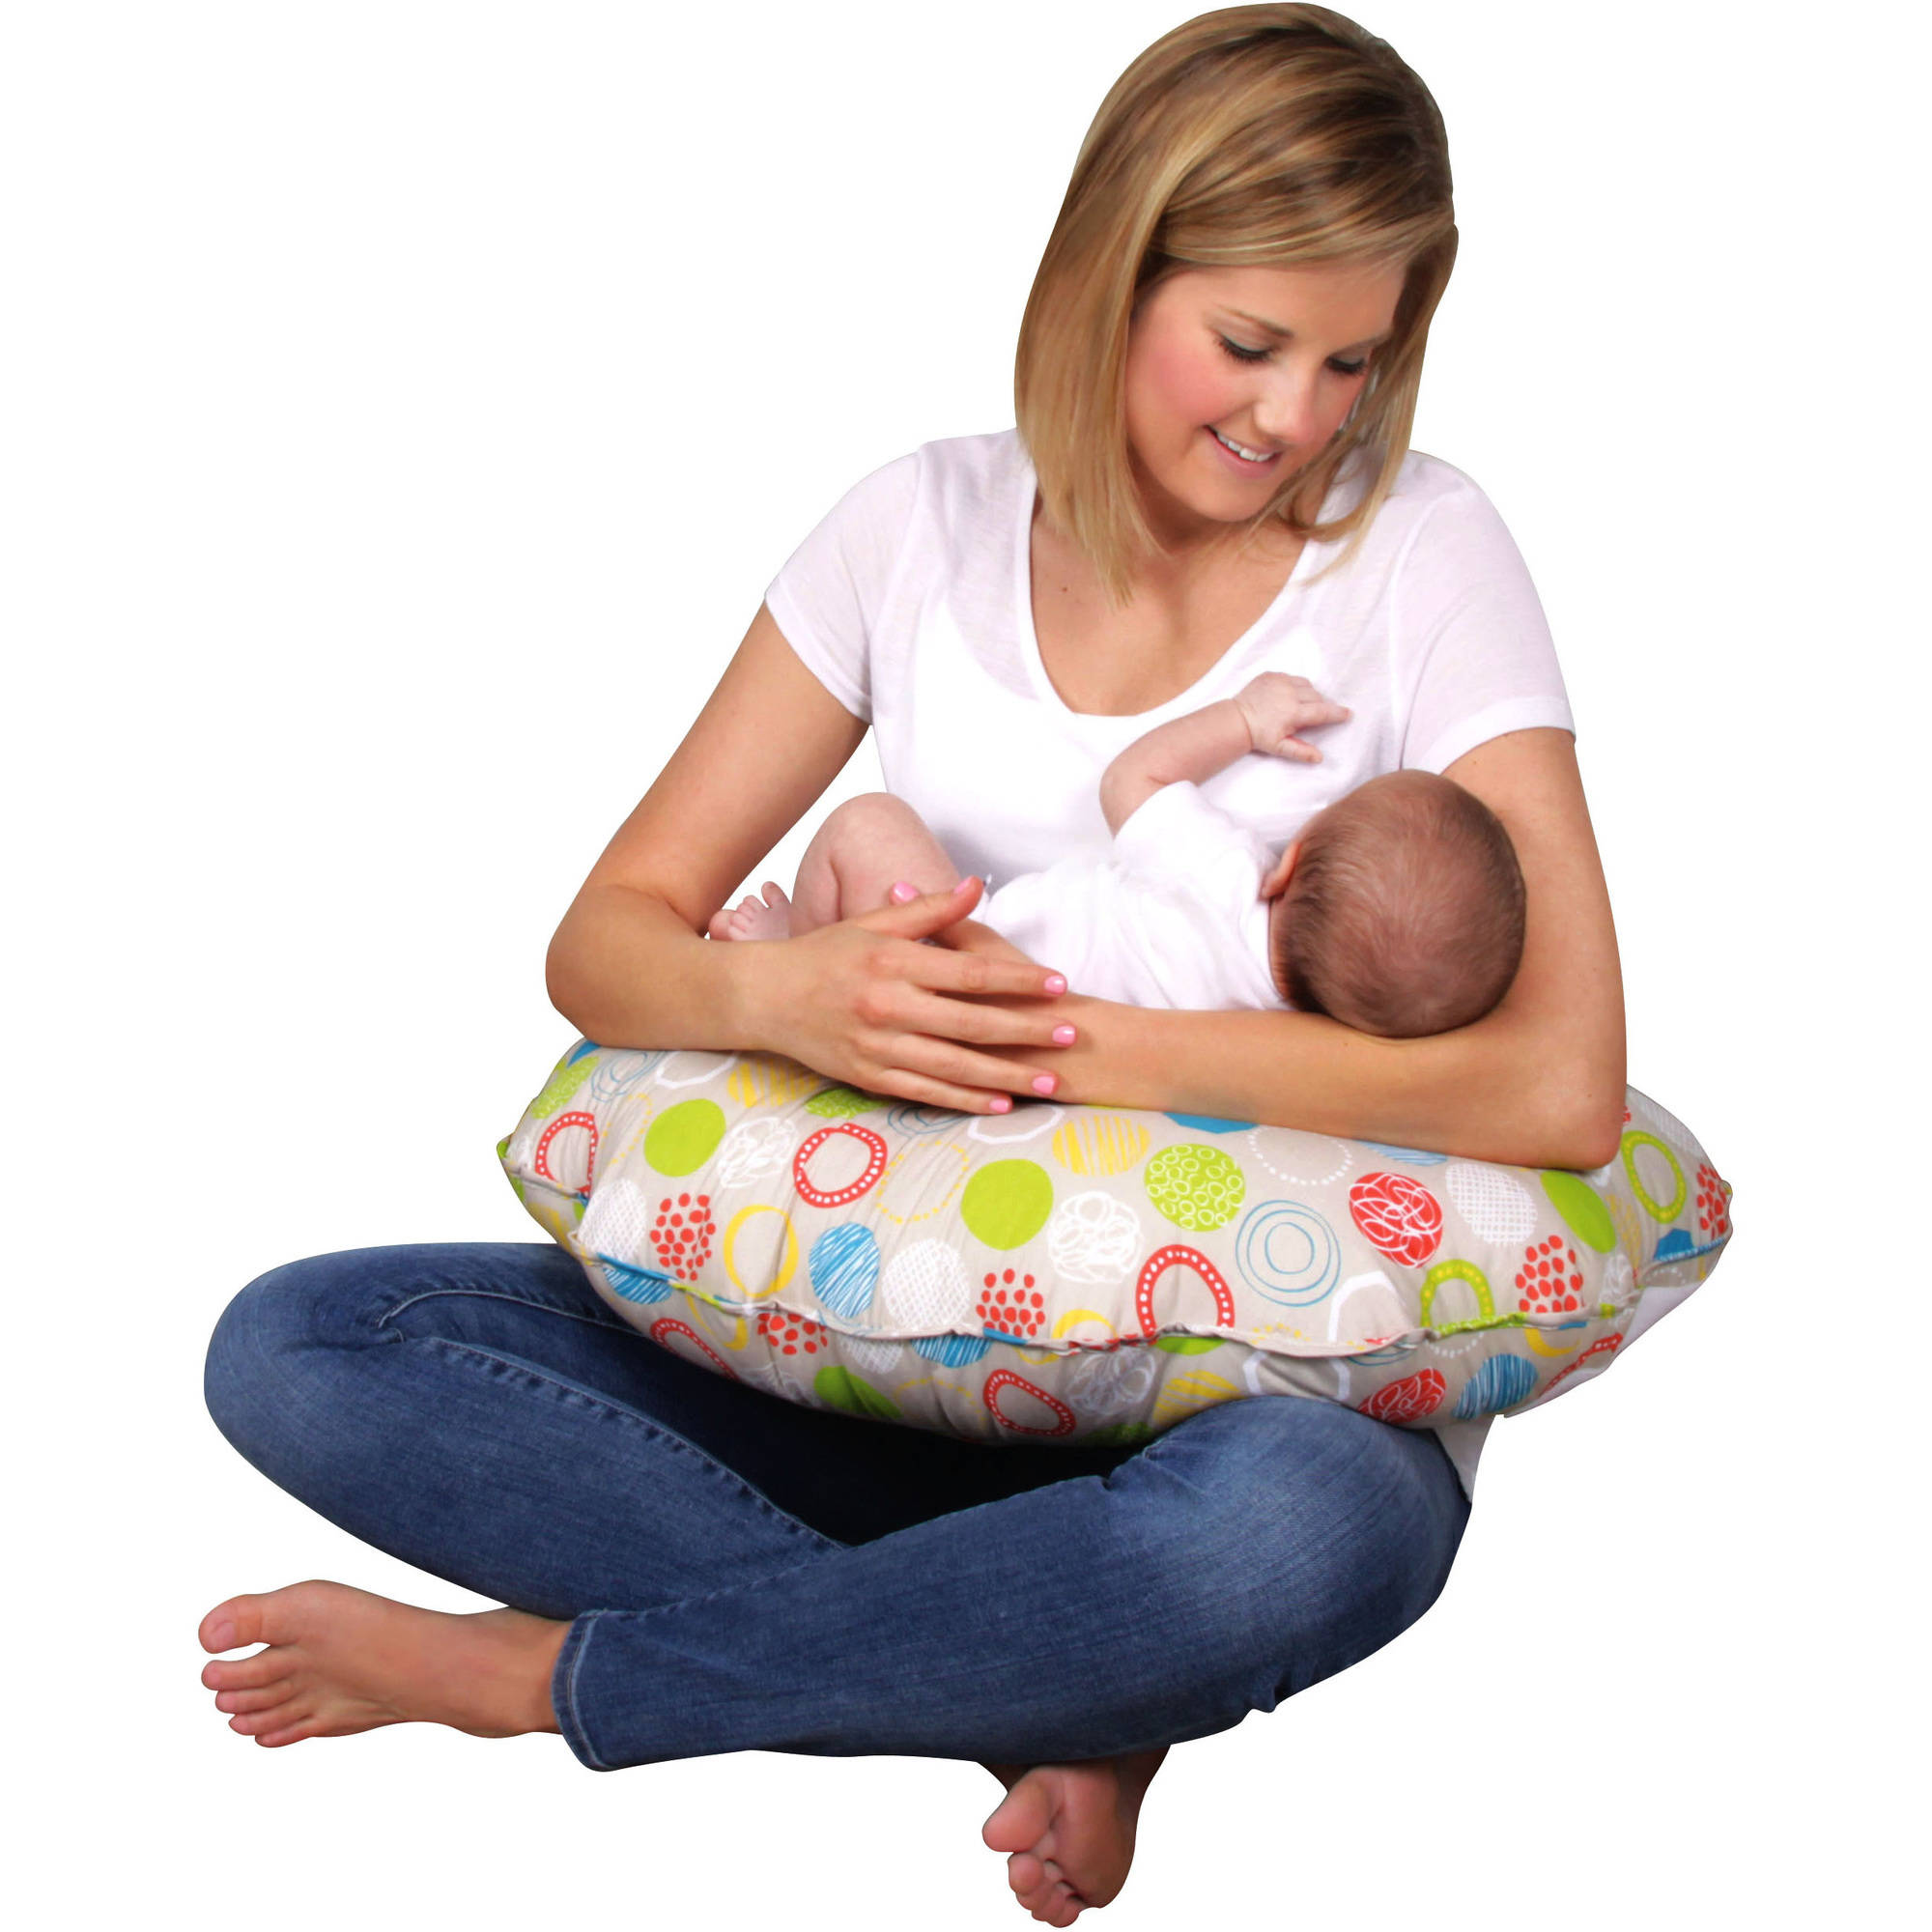 insider nursing pillow the pillows can guide buying best business you with ipnursingpillowbuyingguidewithbadge buy ip badge